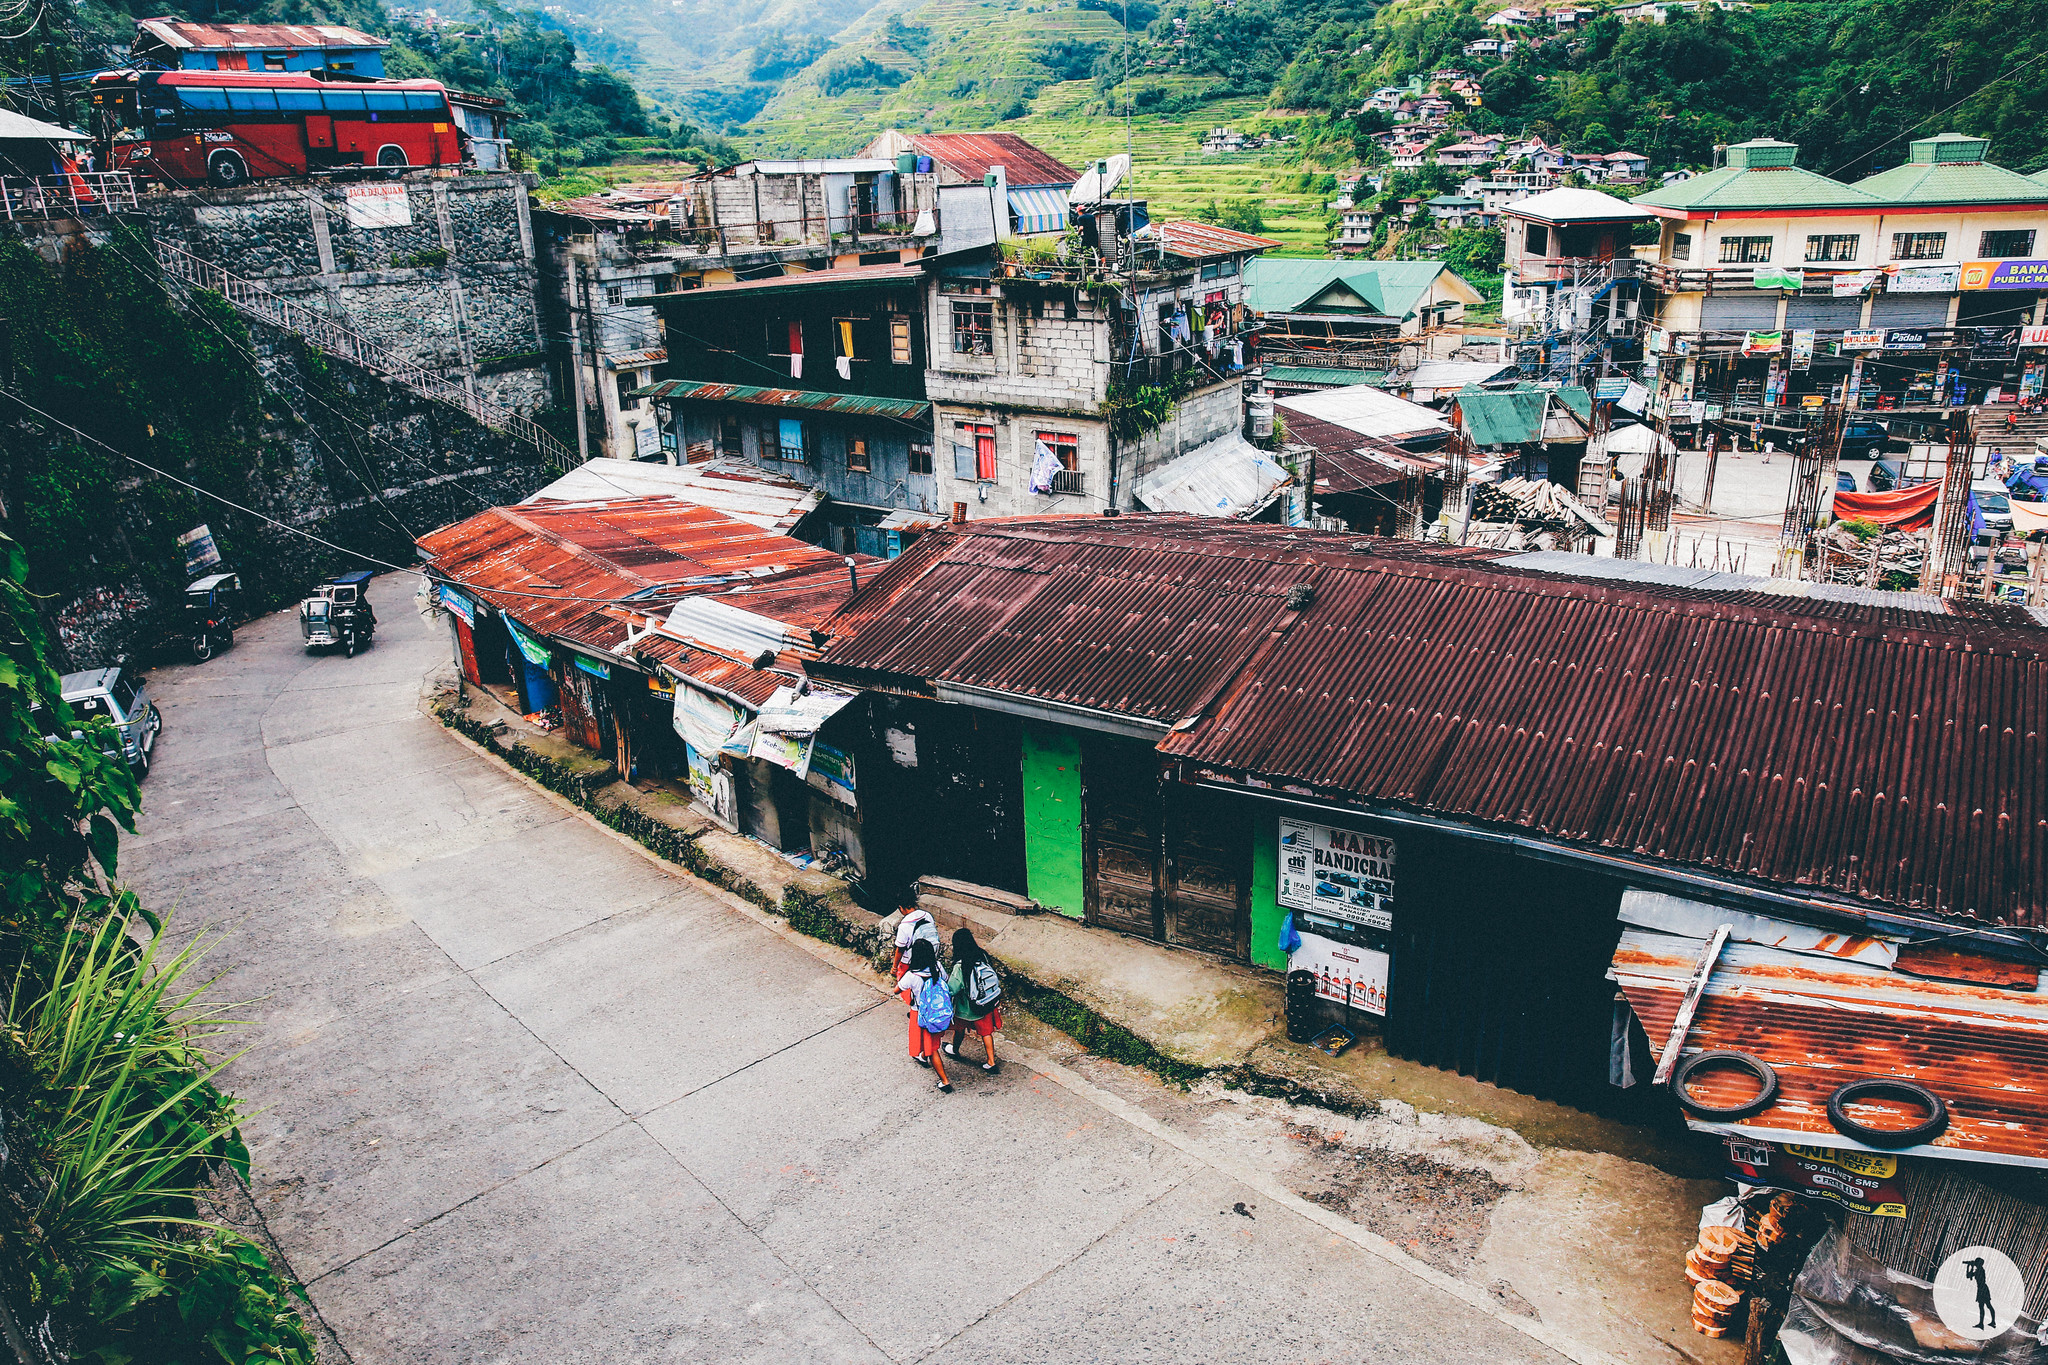 Travel to the Philippines - Banaue